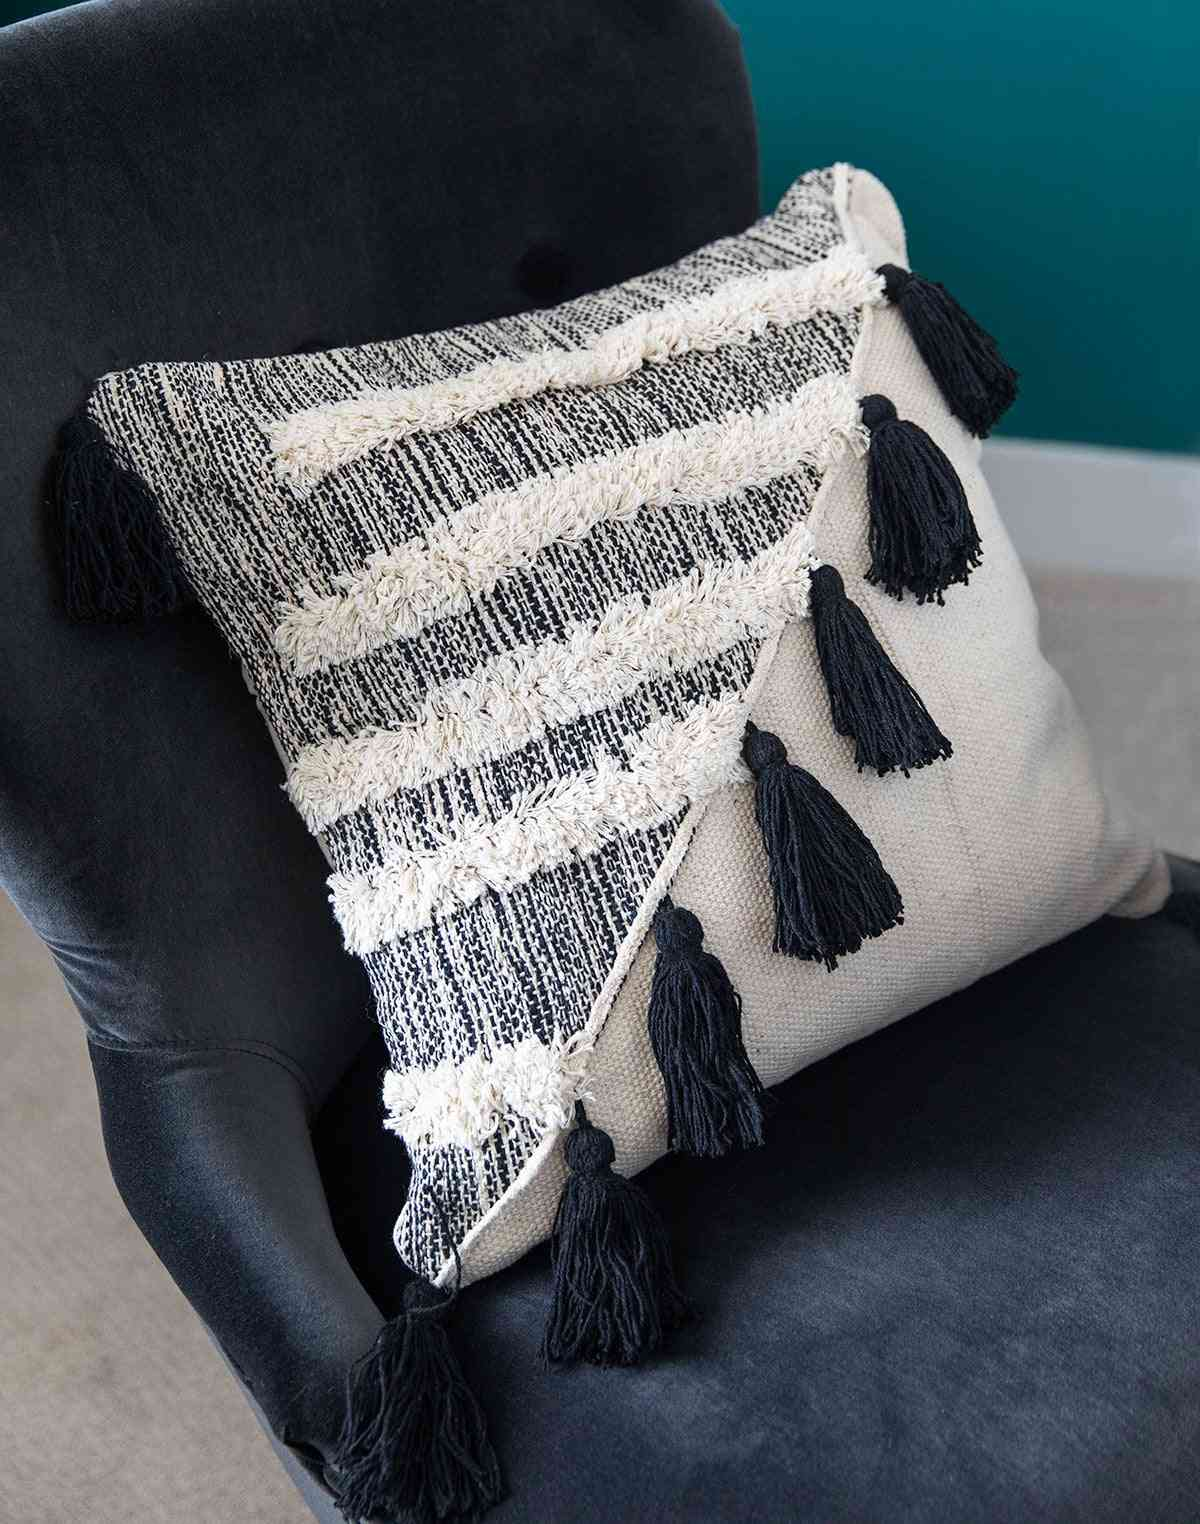 Boho Style Decorative Pillow With Tassels